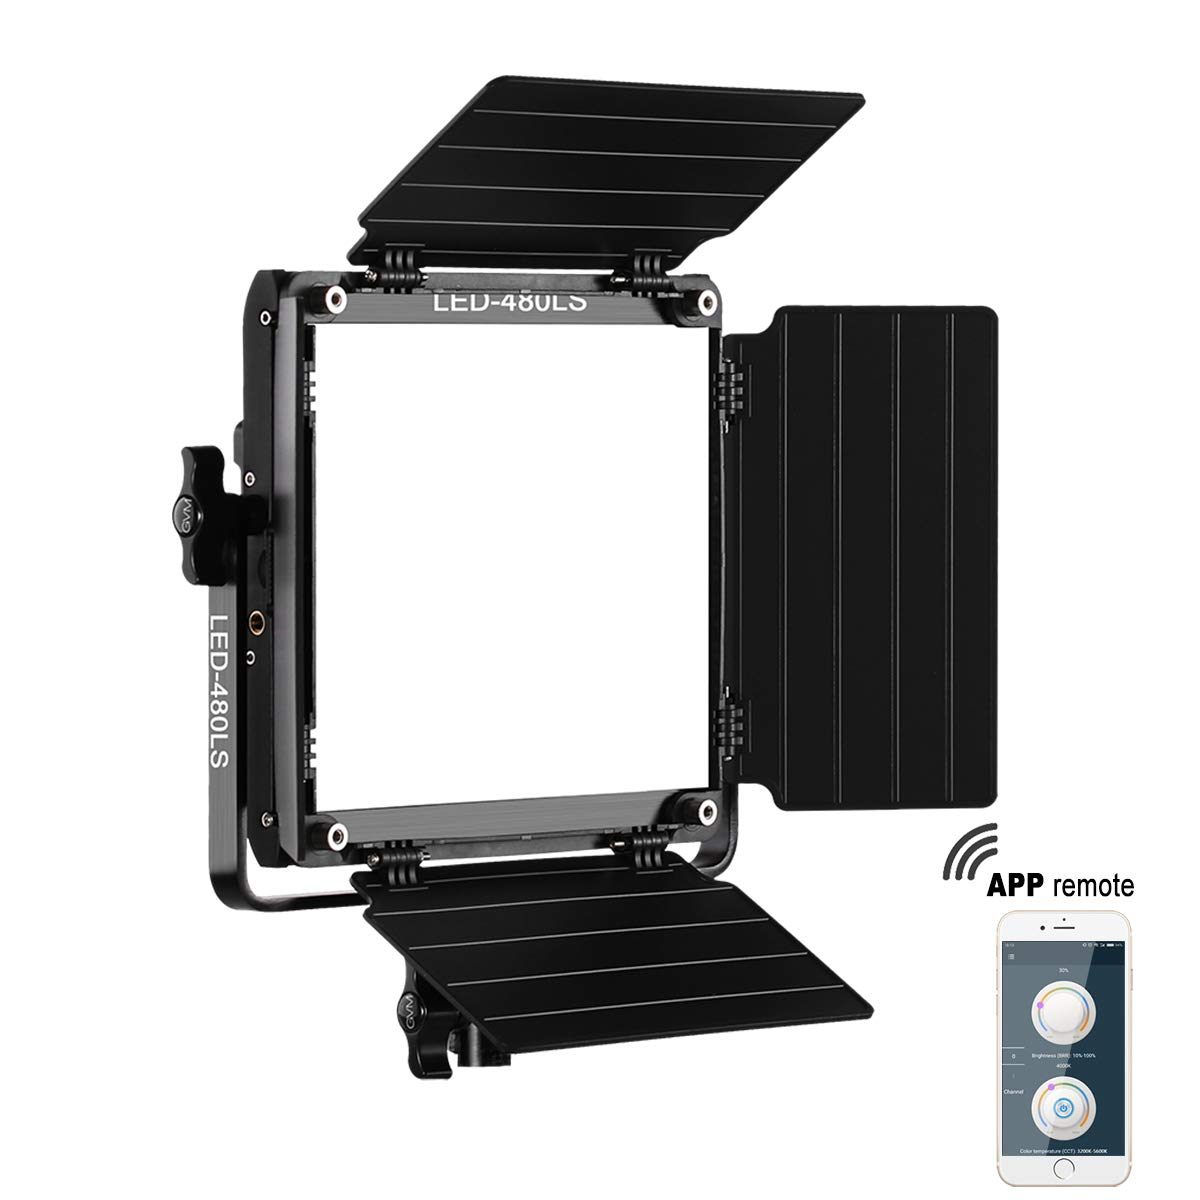 GVM 480 Led Bi-Color Video Light with APP Remote Control Variable CCT 2300K-6800K and 10%-100% Brightness with Digital Display for youtube Studio Photography Shooting with CRI97+ TLCI97 Camera Video L